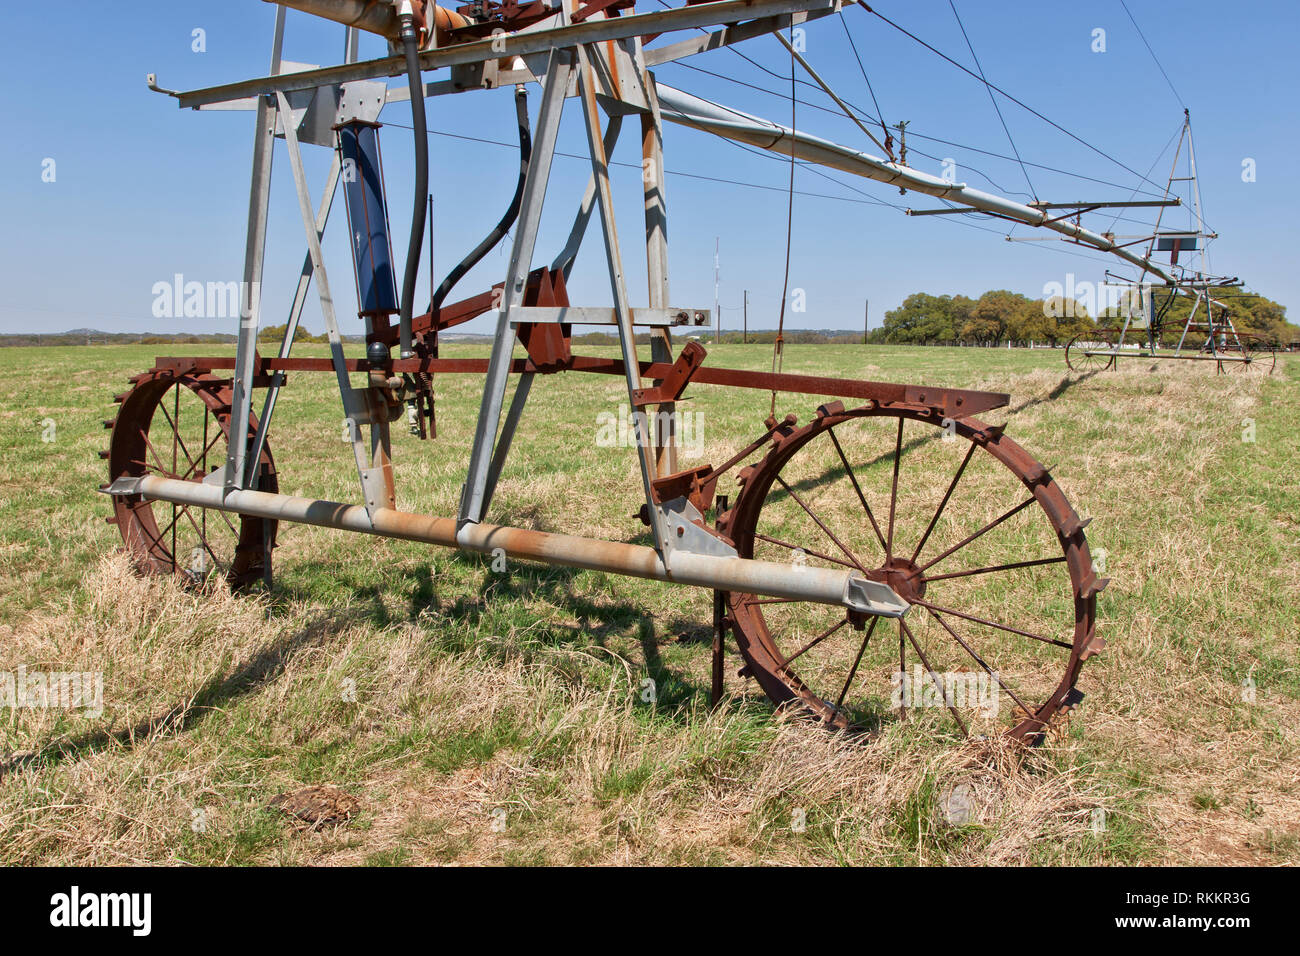 Antique 'Valley Self-Propelled' Wheel Line Pivot irrigation system,  dormant irrigated pasture. - Stock Image